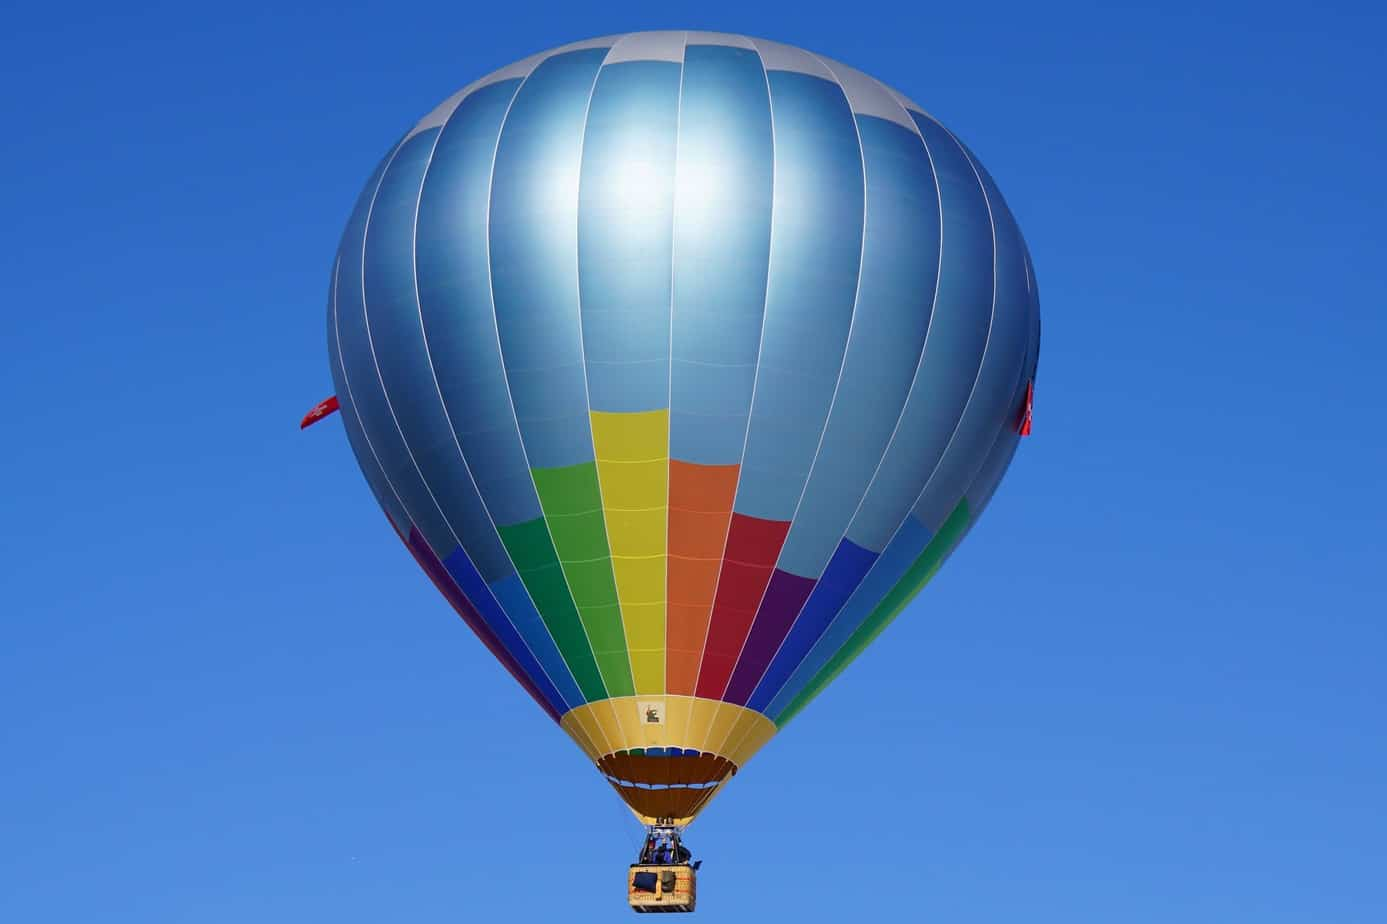 Hot Air Balloon on a blue sky background